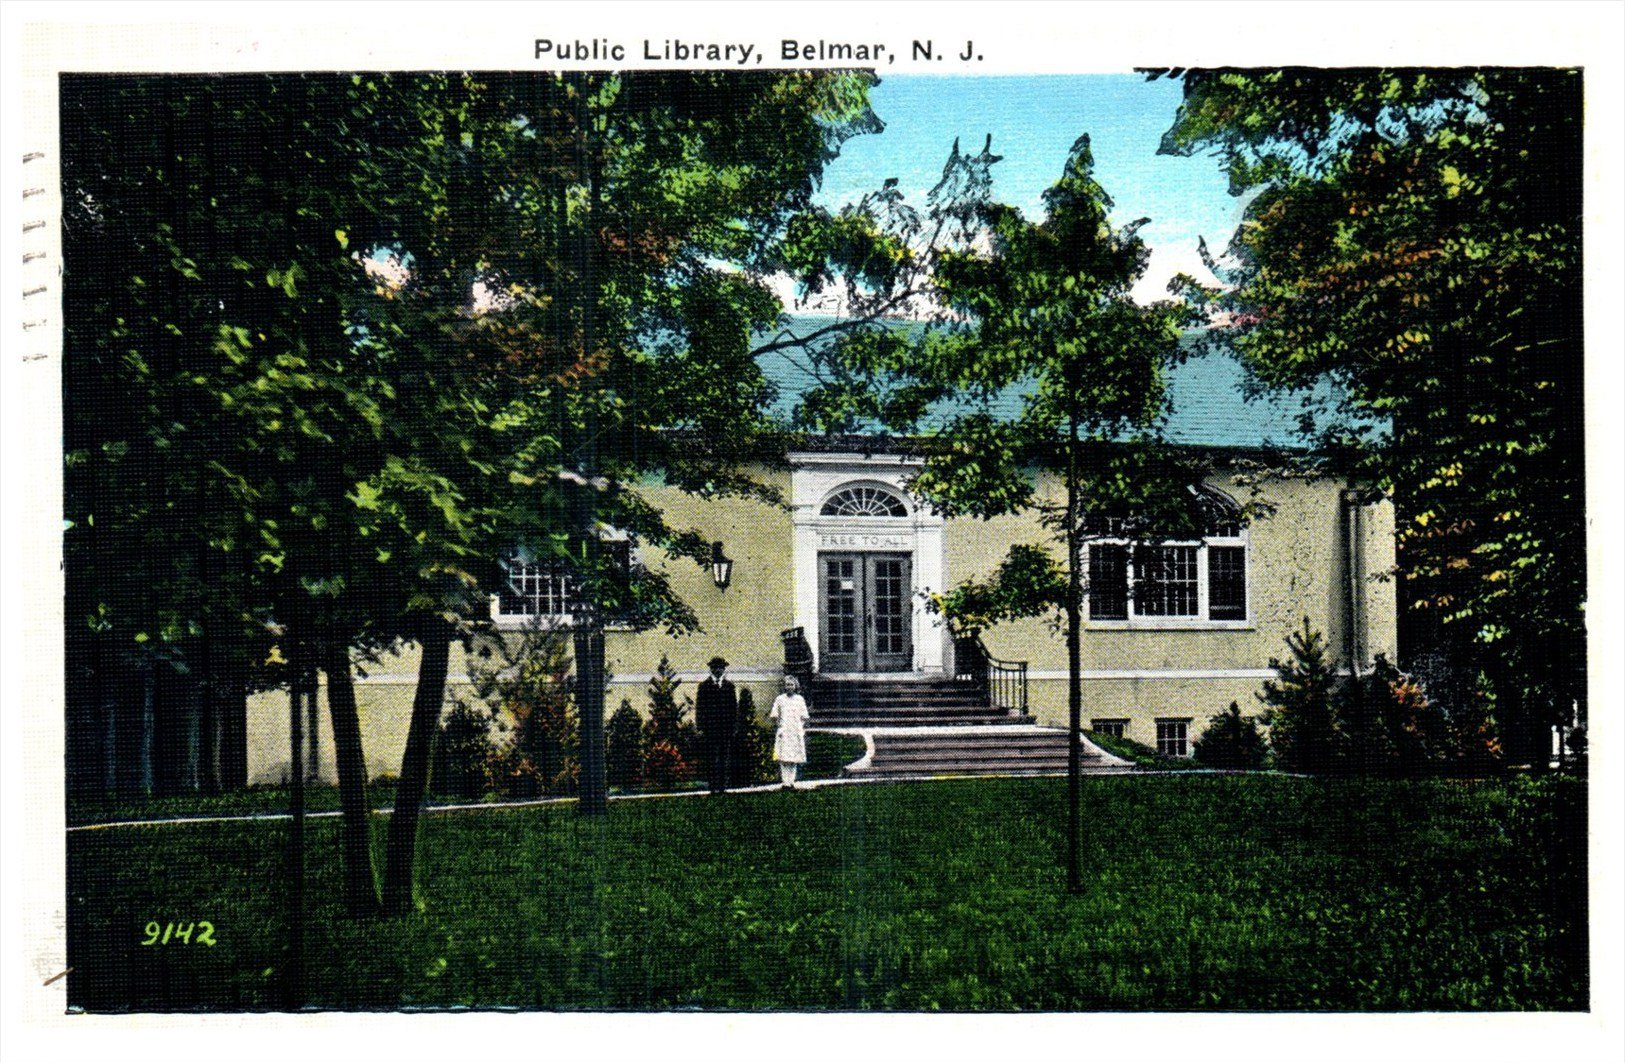 A post-card of the Belmar Public Library showcasing its colonial architecture and surrounding foliage.   Photo from: Hippostcard.com